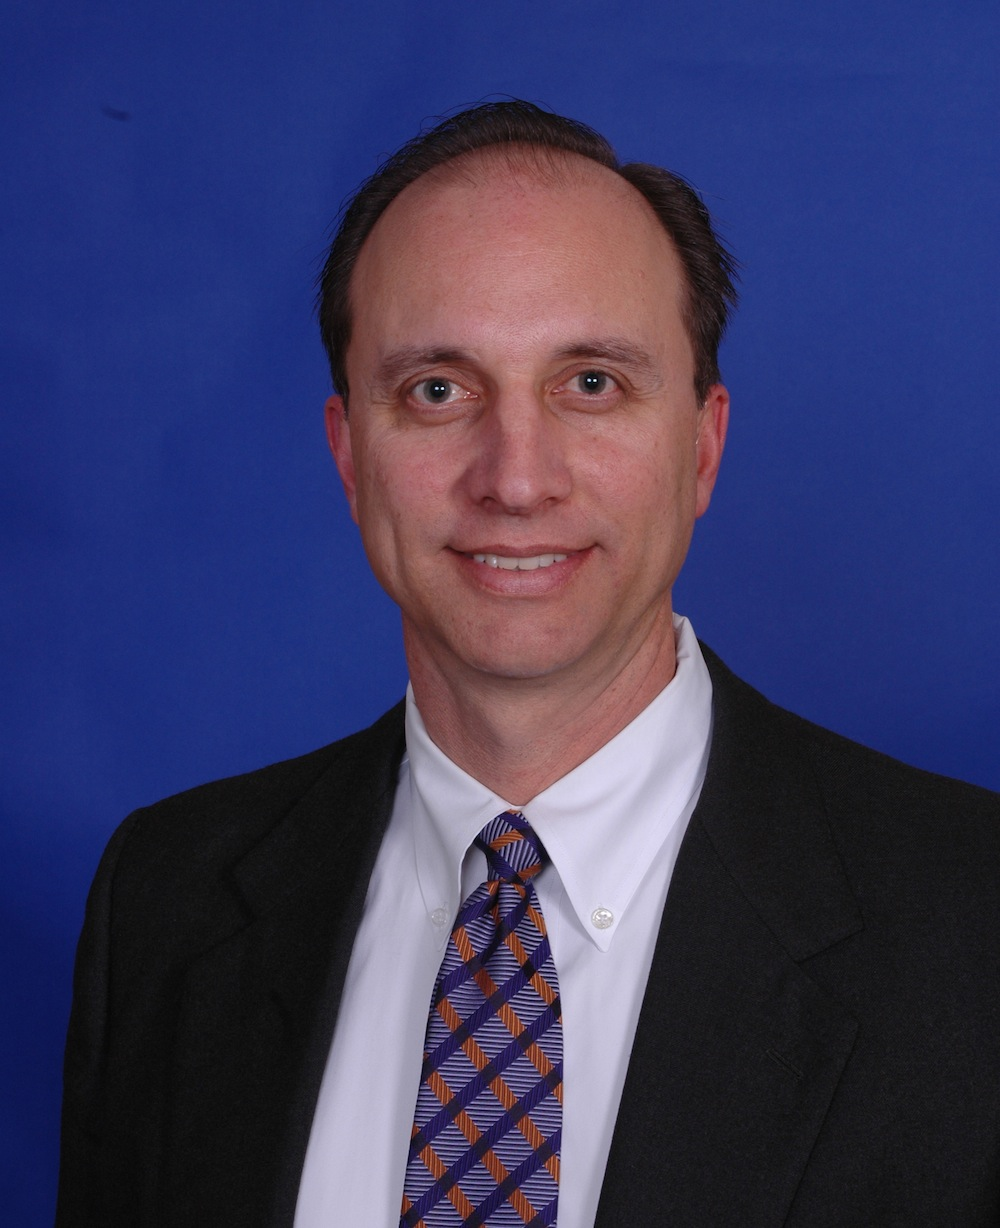 Dr. Timothy Tice